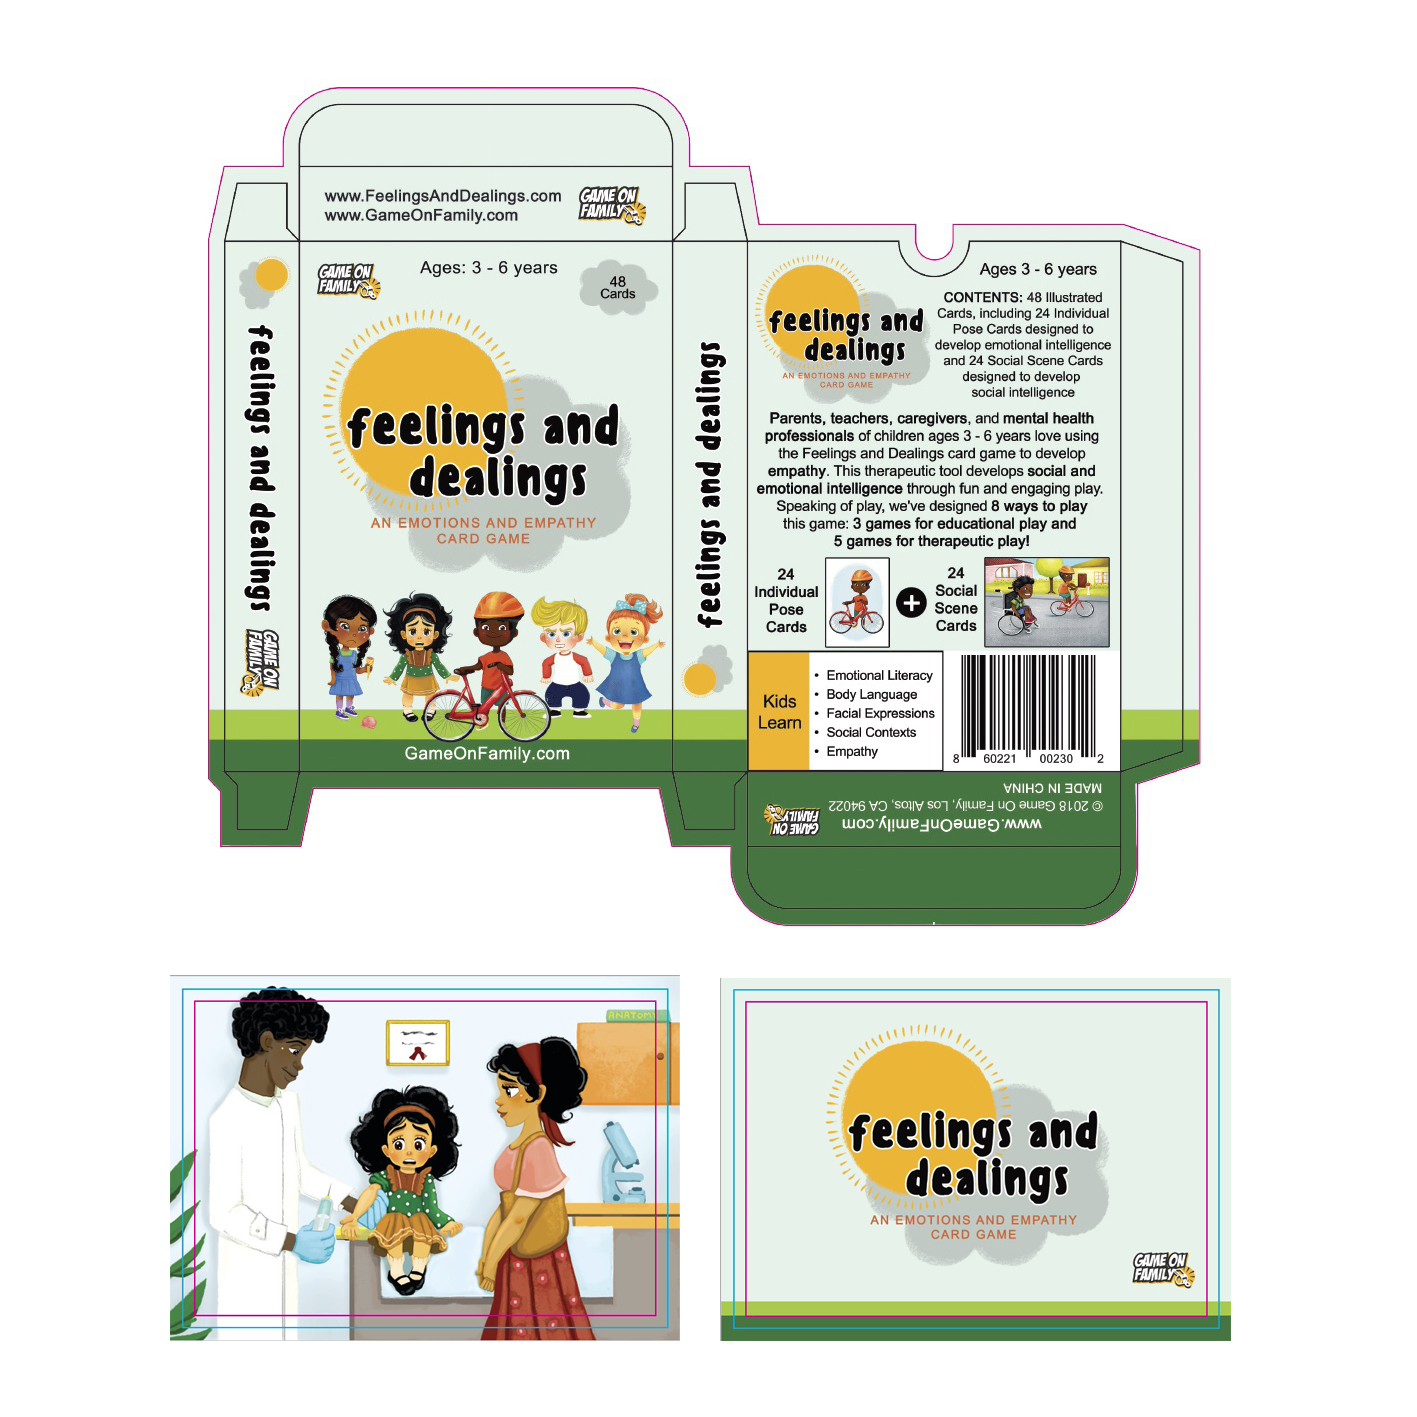 childrens game box layout and design copy.jpg